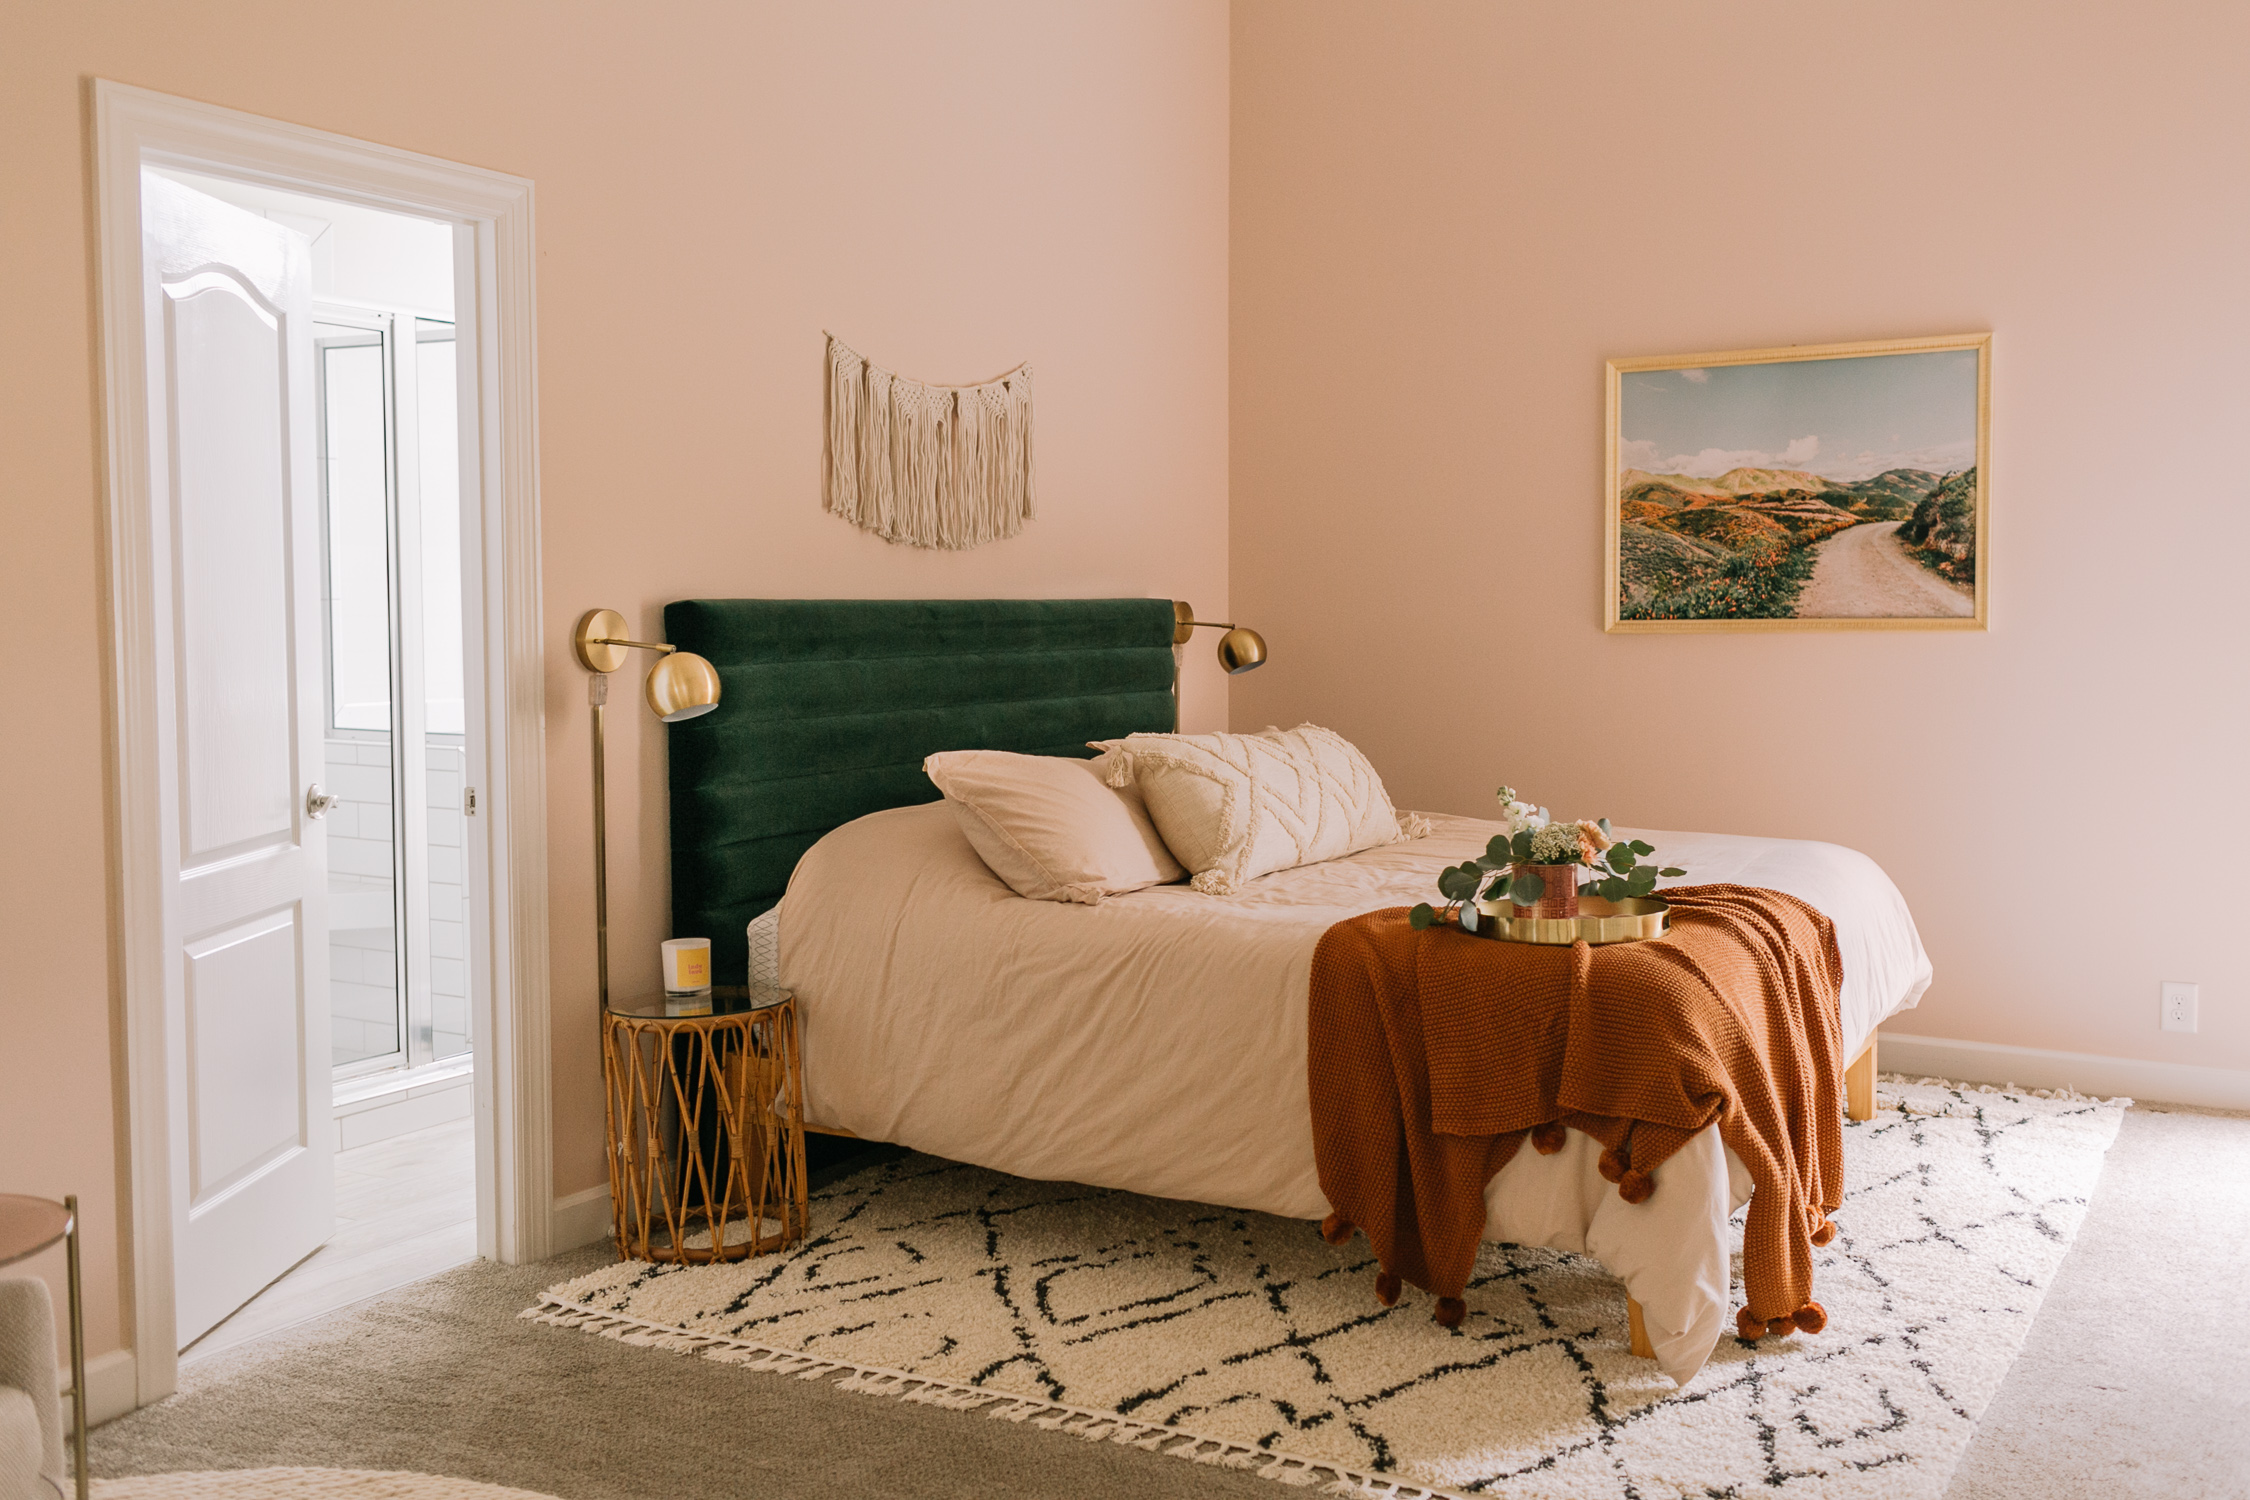 Keely's Bedroom Makeover (Before + After!)